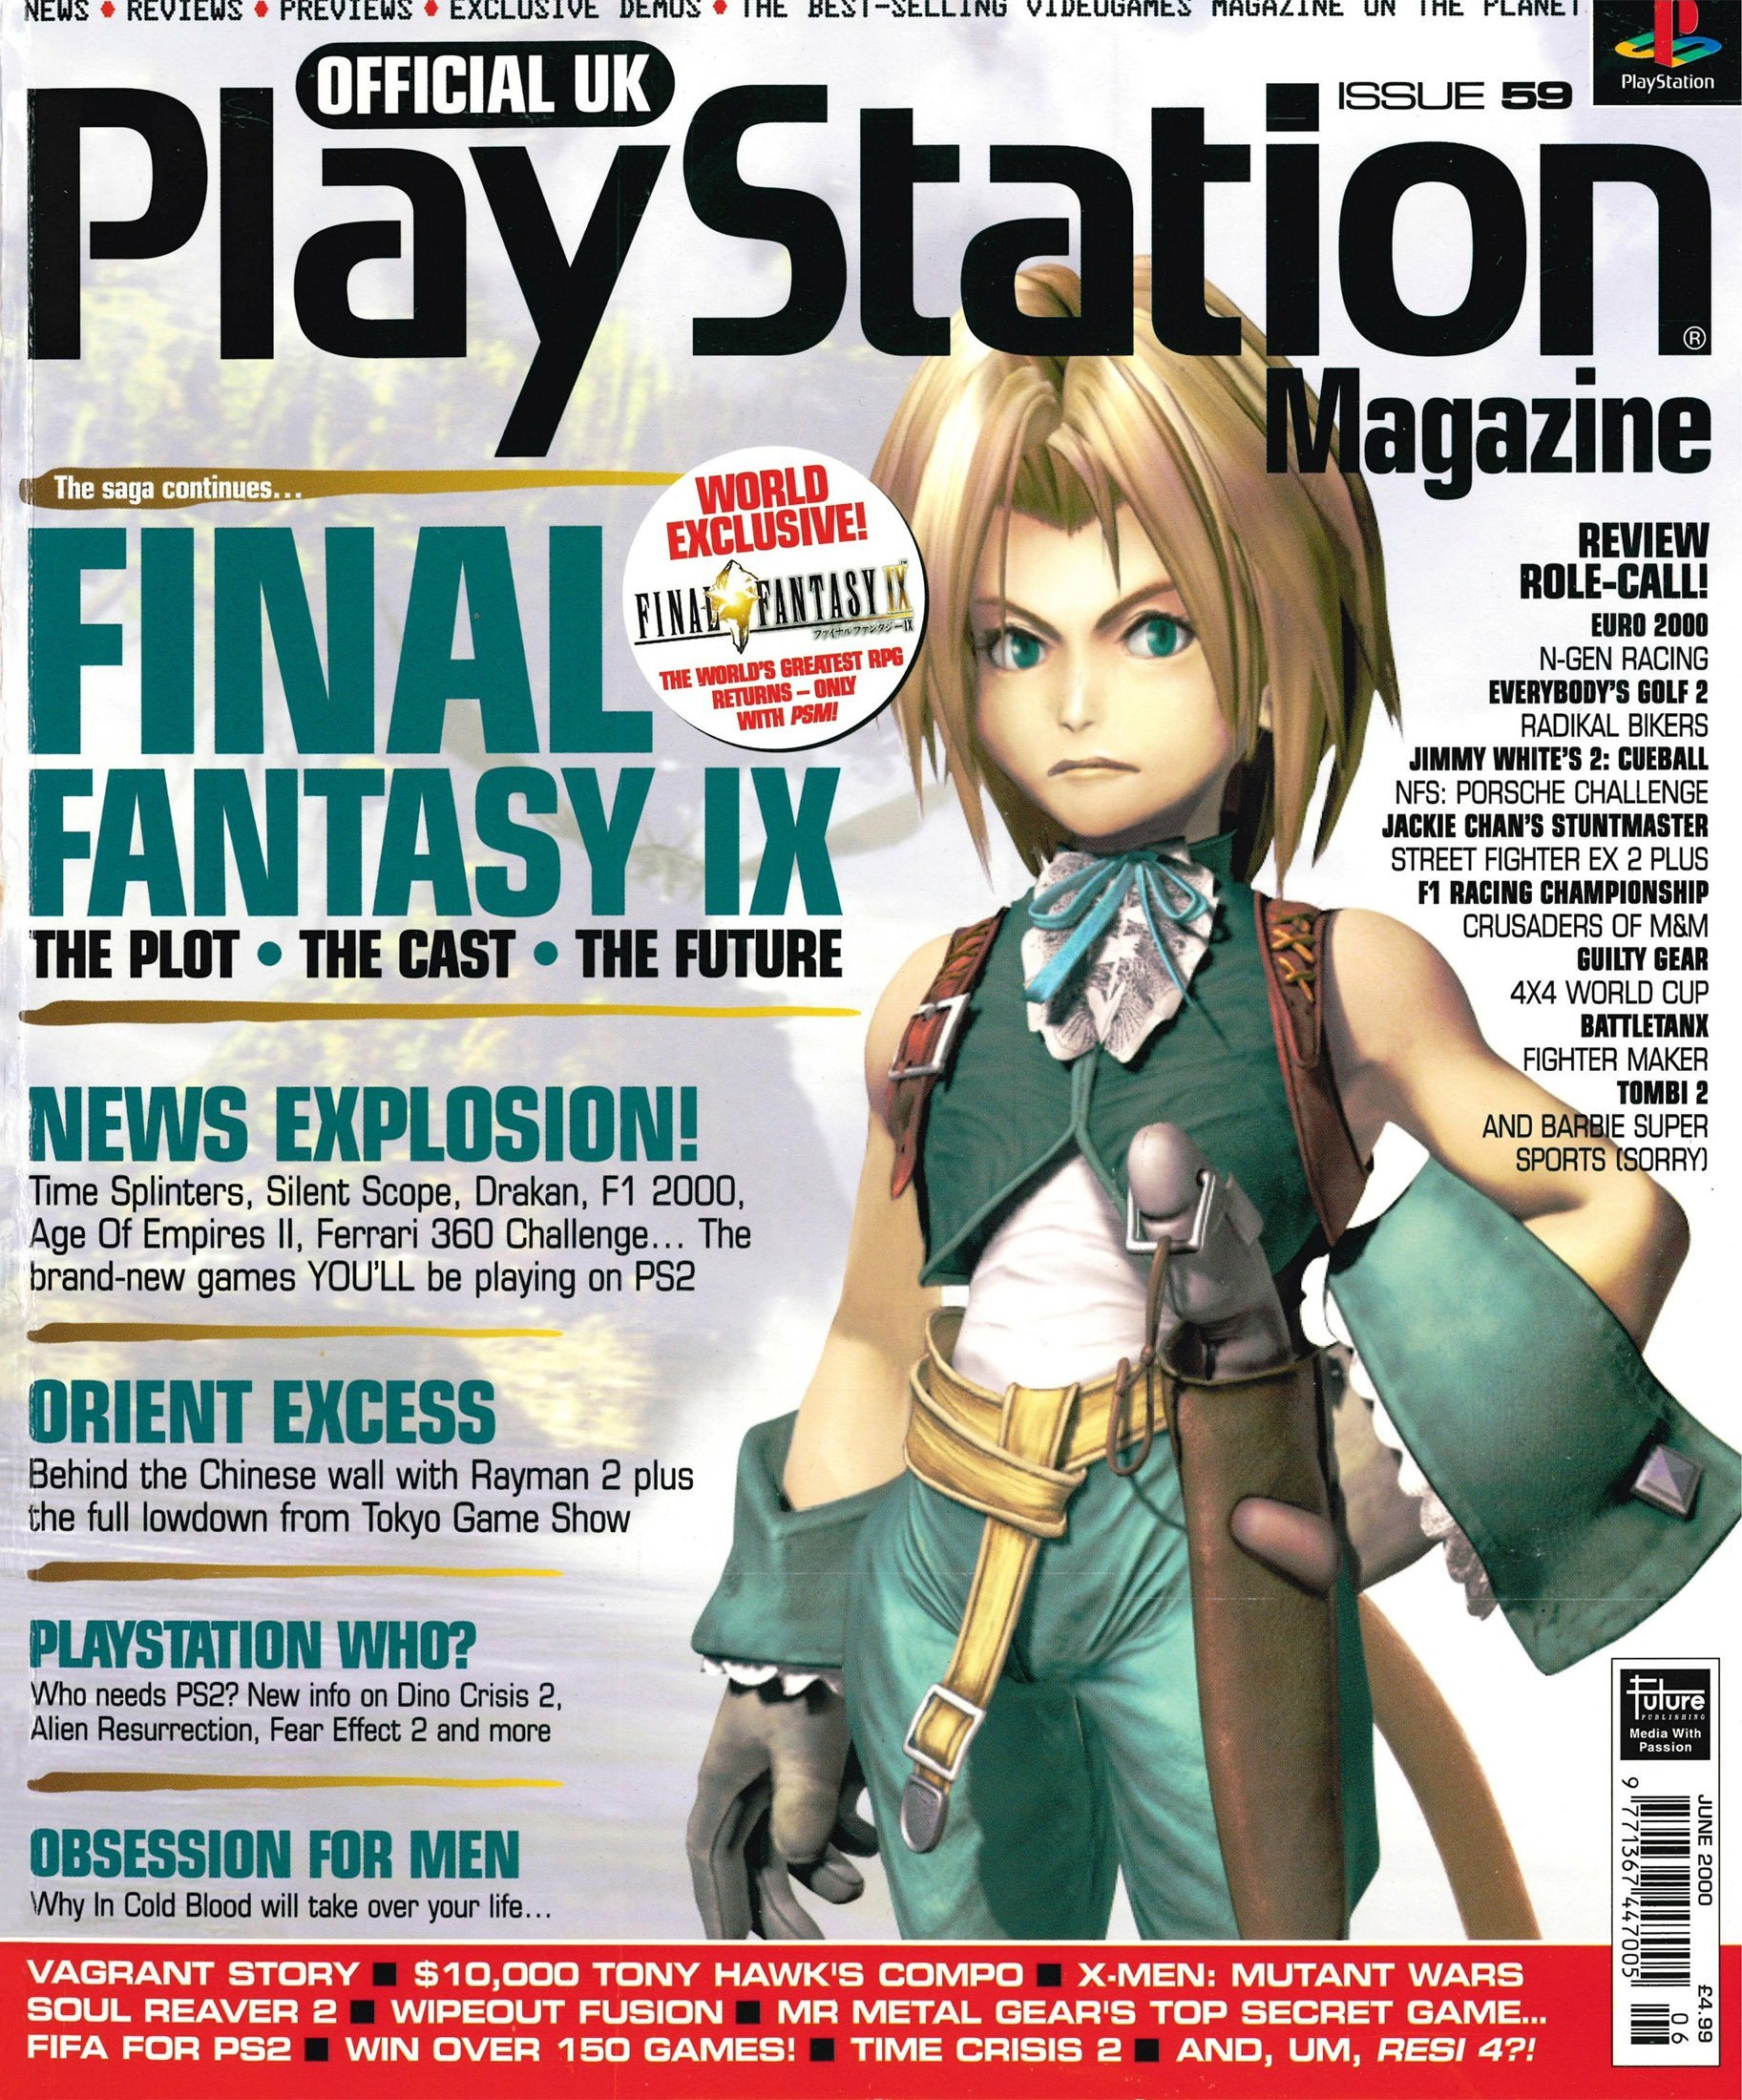 Official UK PlayStation Magazine Issue 059 (June 2000)